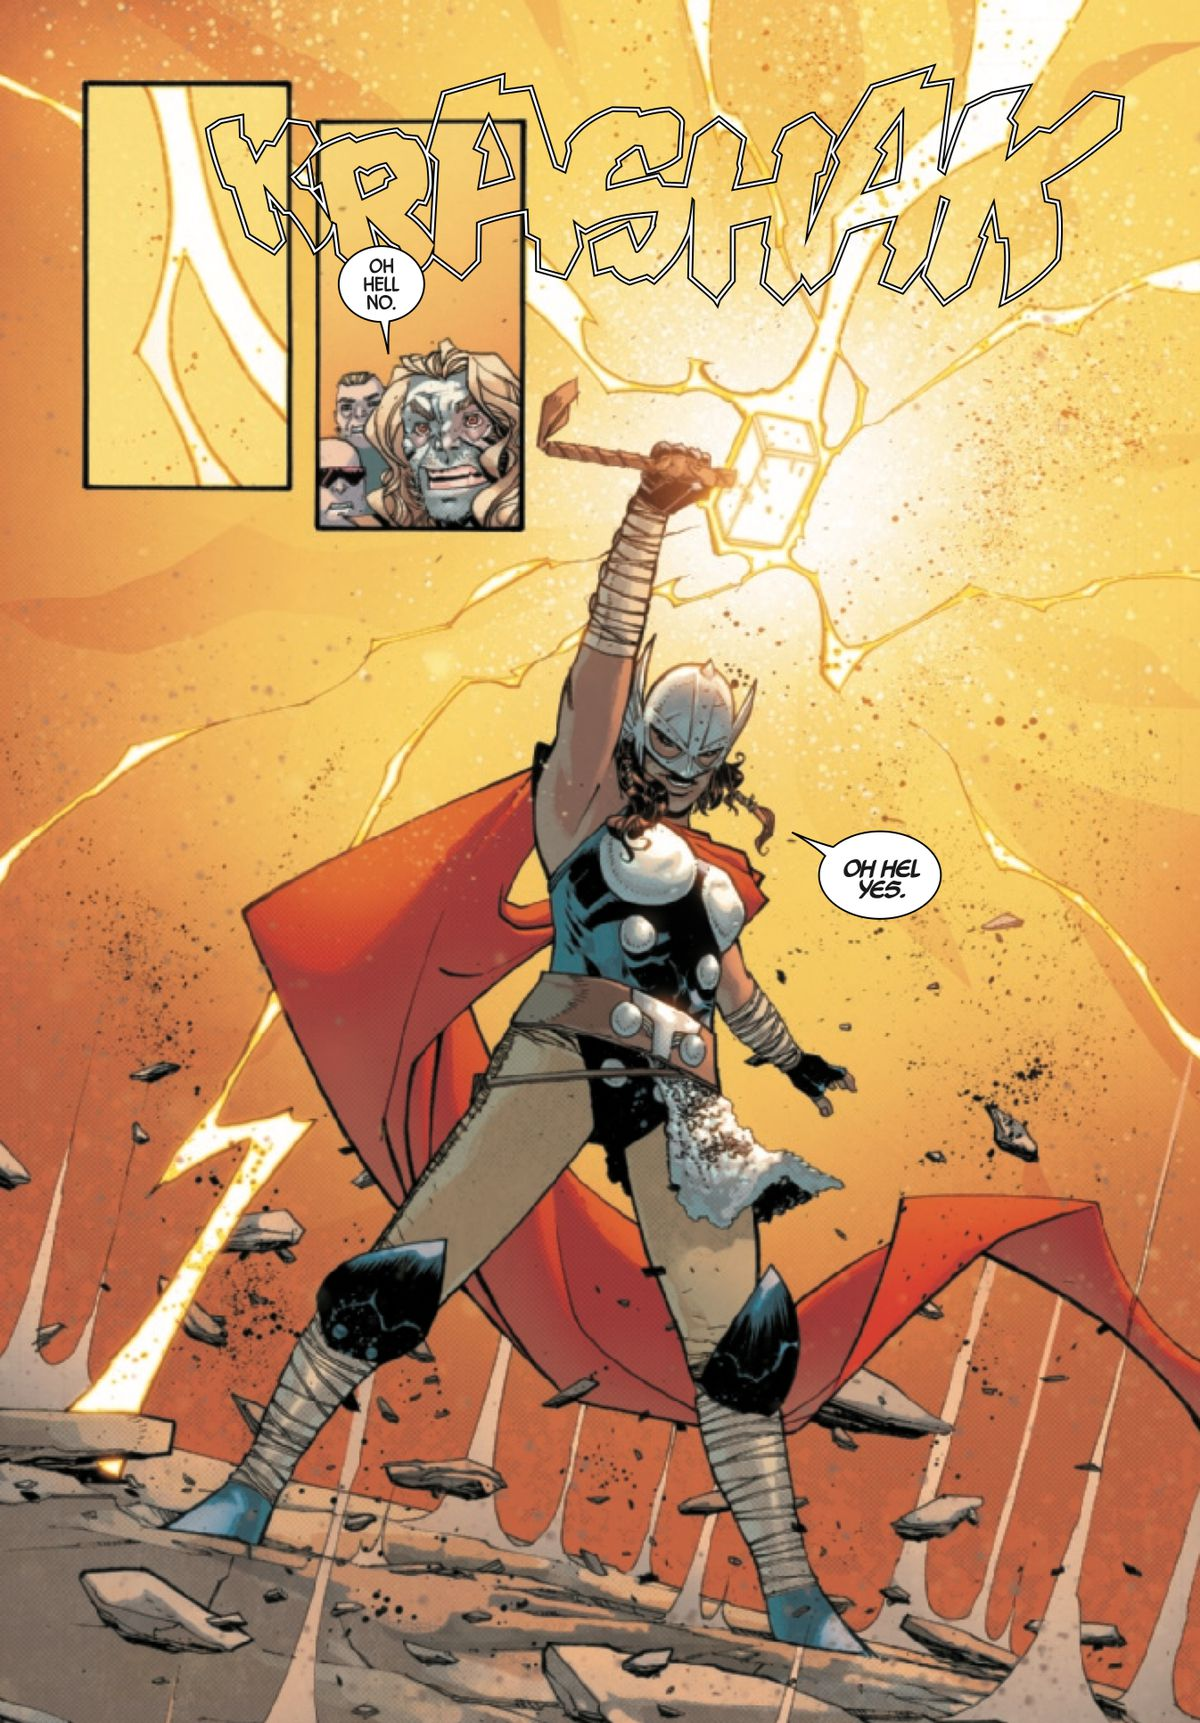 Danielle Cage shows she is worthy by lifting Mjolnir and gaining the powers of Thor, in Dead Man Logan #11, Marvel Comics (2019).